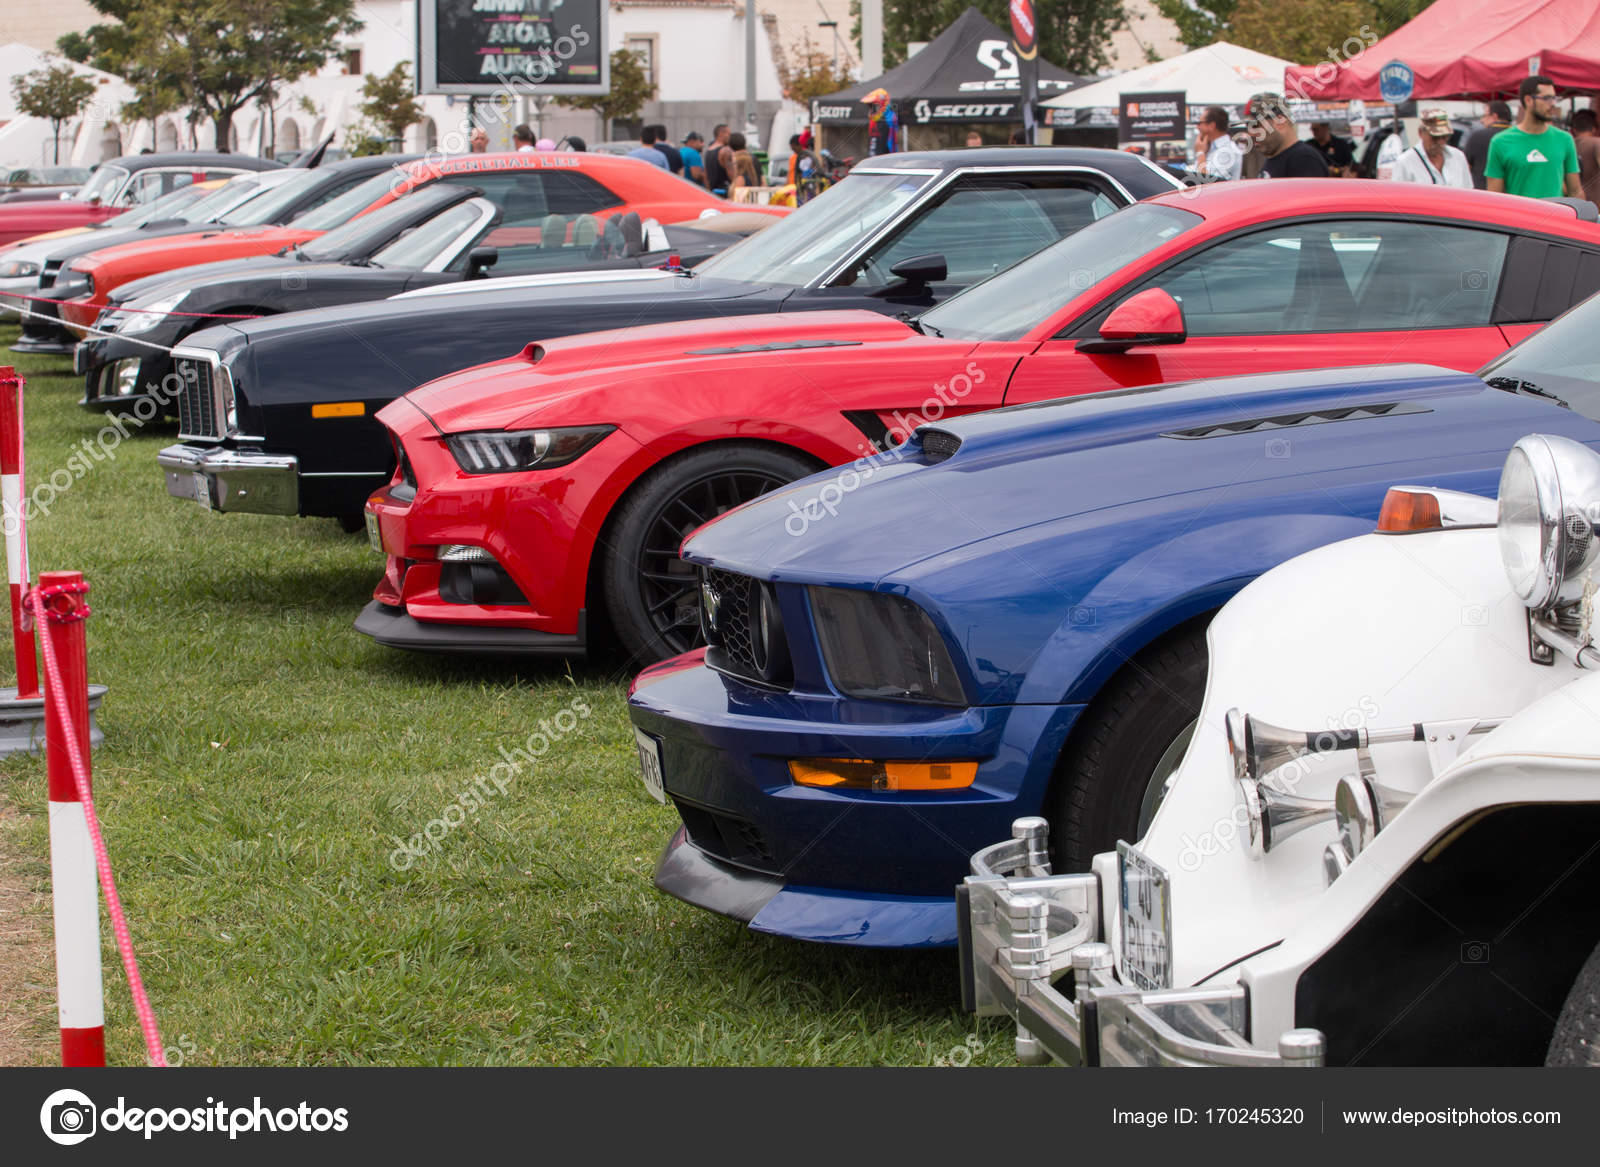 Classic cars on a show – Stock Editorial Photo © membio #170245320